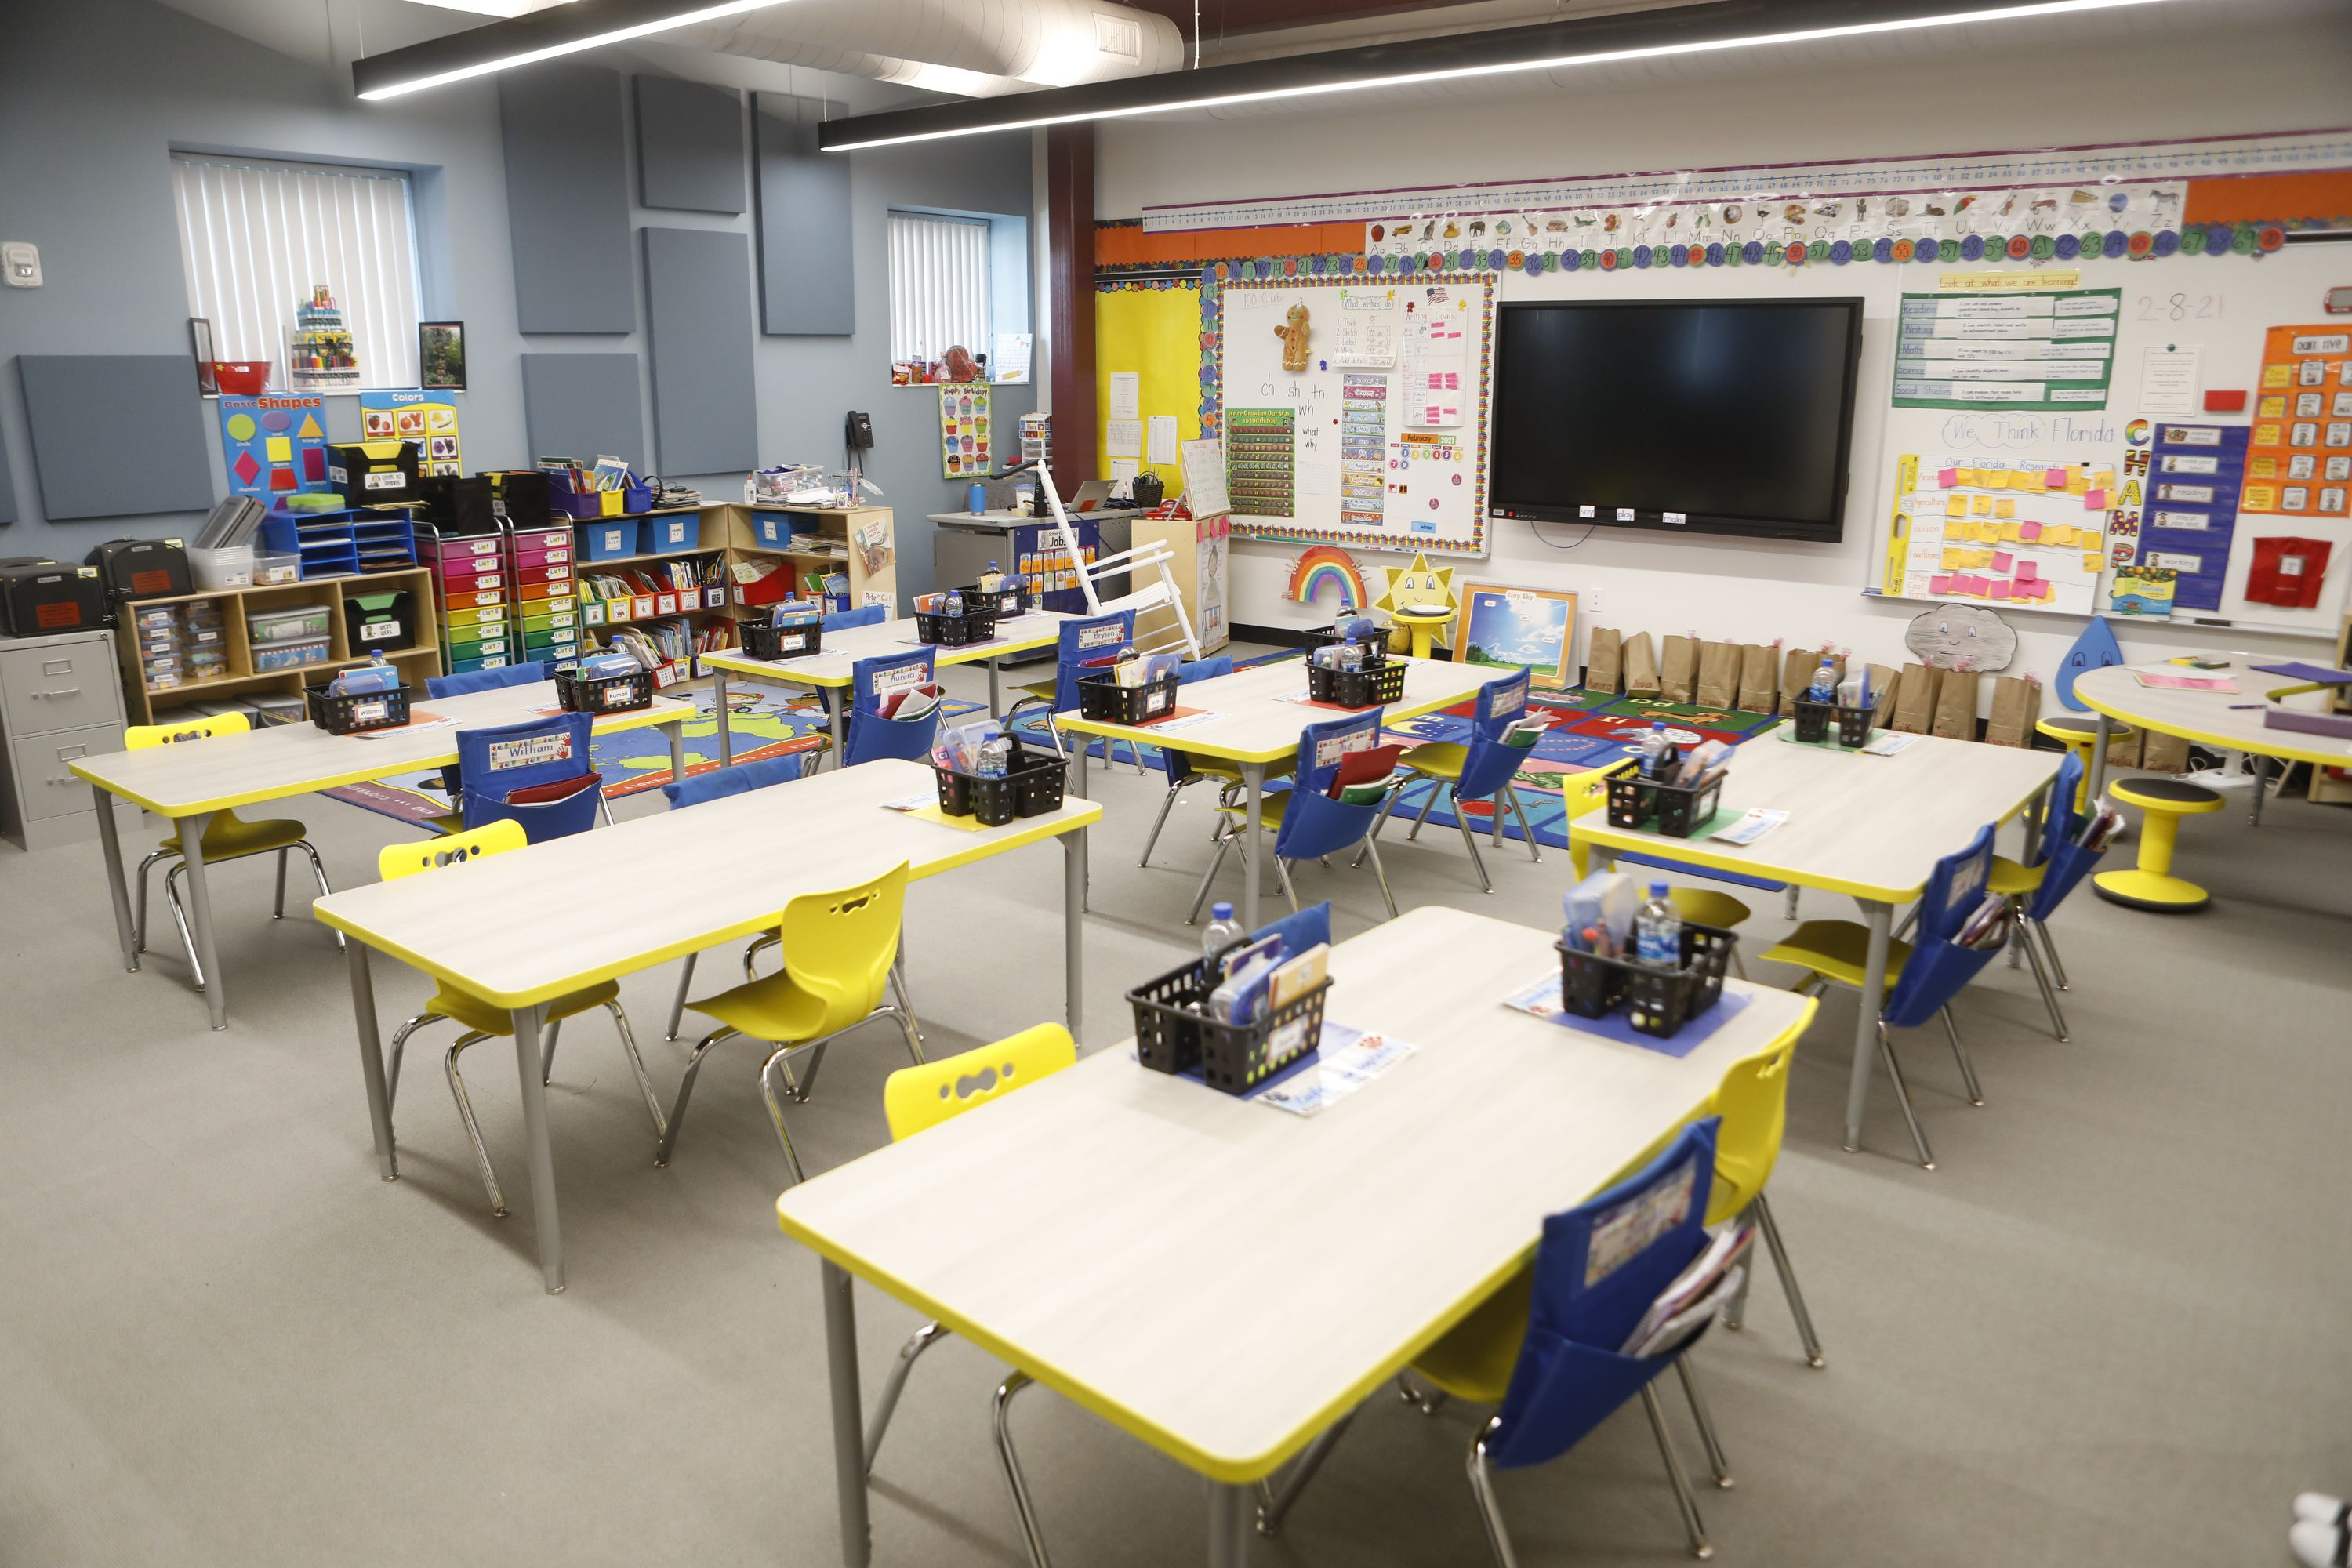 A photograph of a classroom inside the newly renovated Tampa Heights Elementary School, with desks and brightly colored chairs.